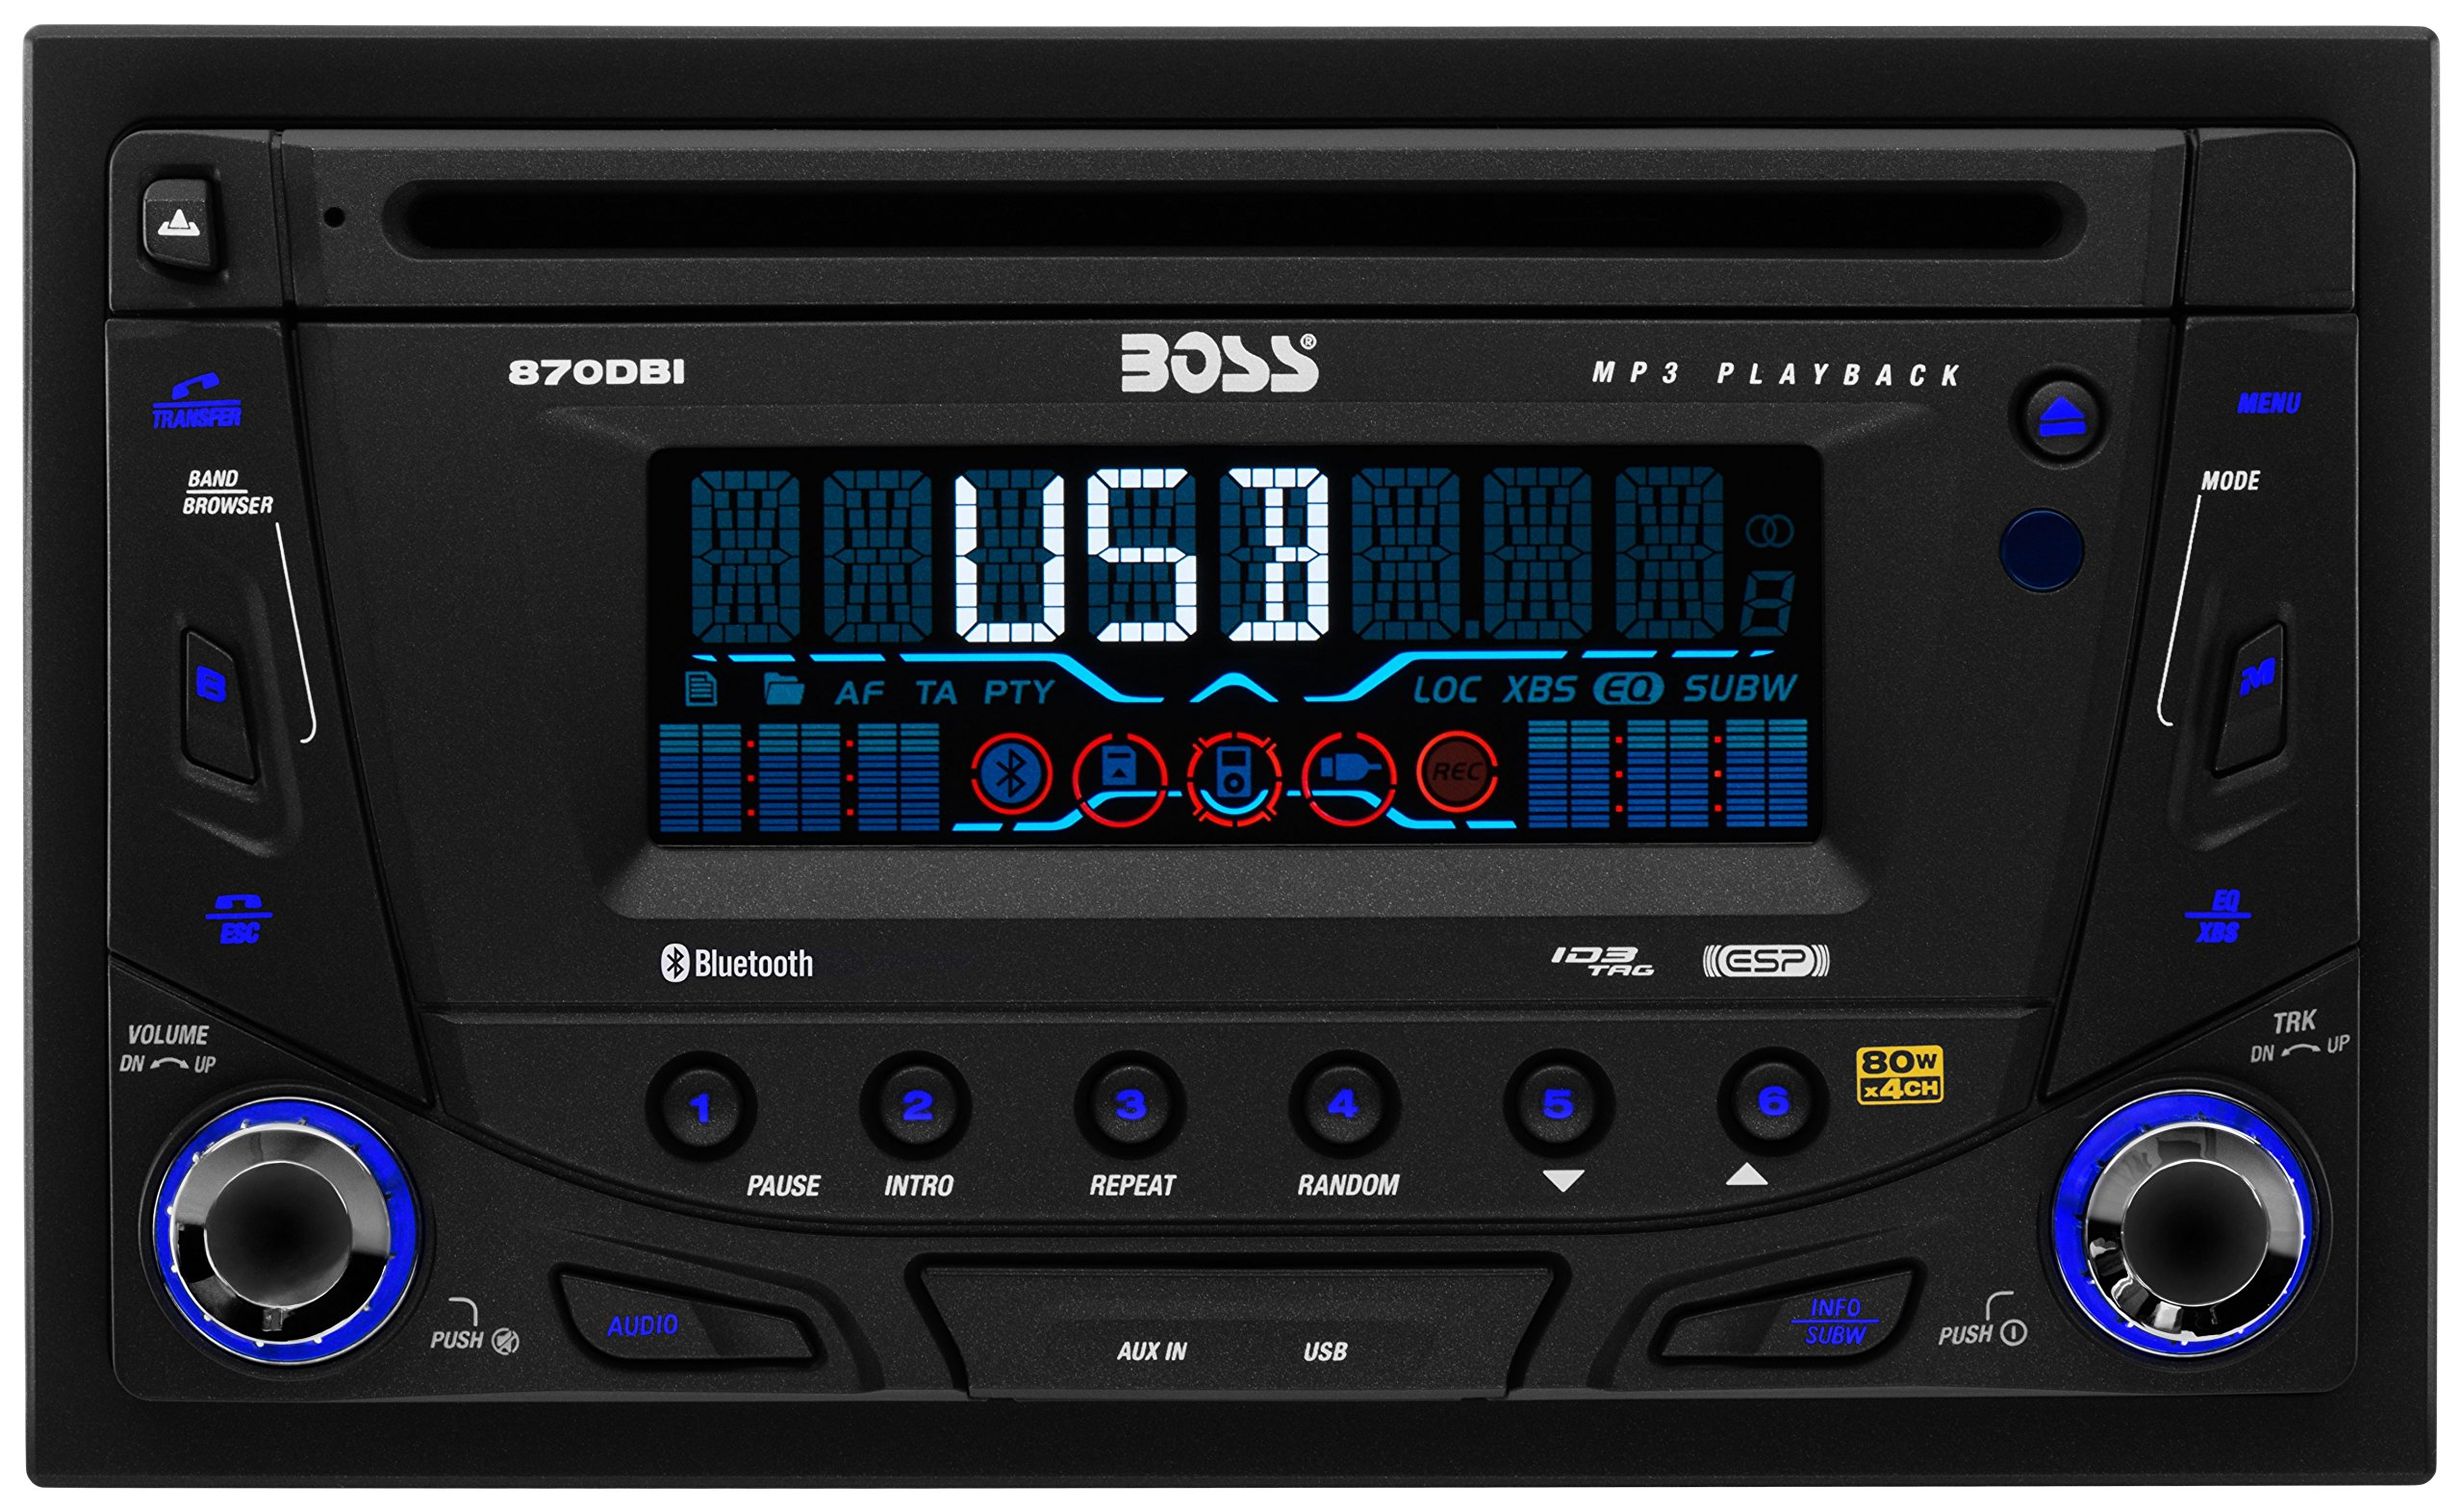 BOSS AUDIO 870DBI Double-DIN CD/MP3 Player Receiver, Bluetooth, Detachable Front Panel, Wireless Remote by BOSS Audio